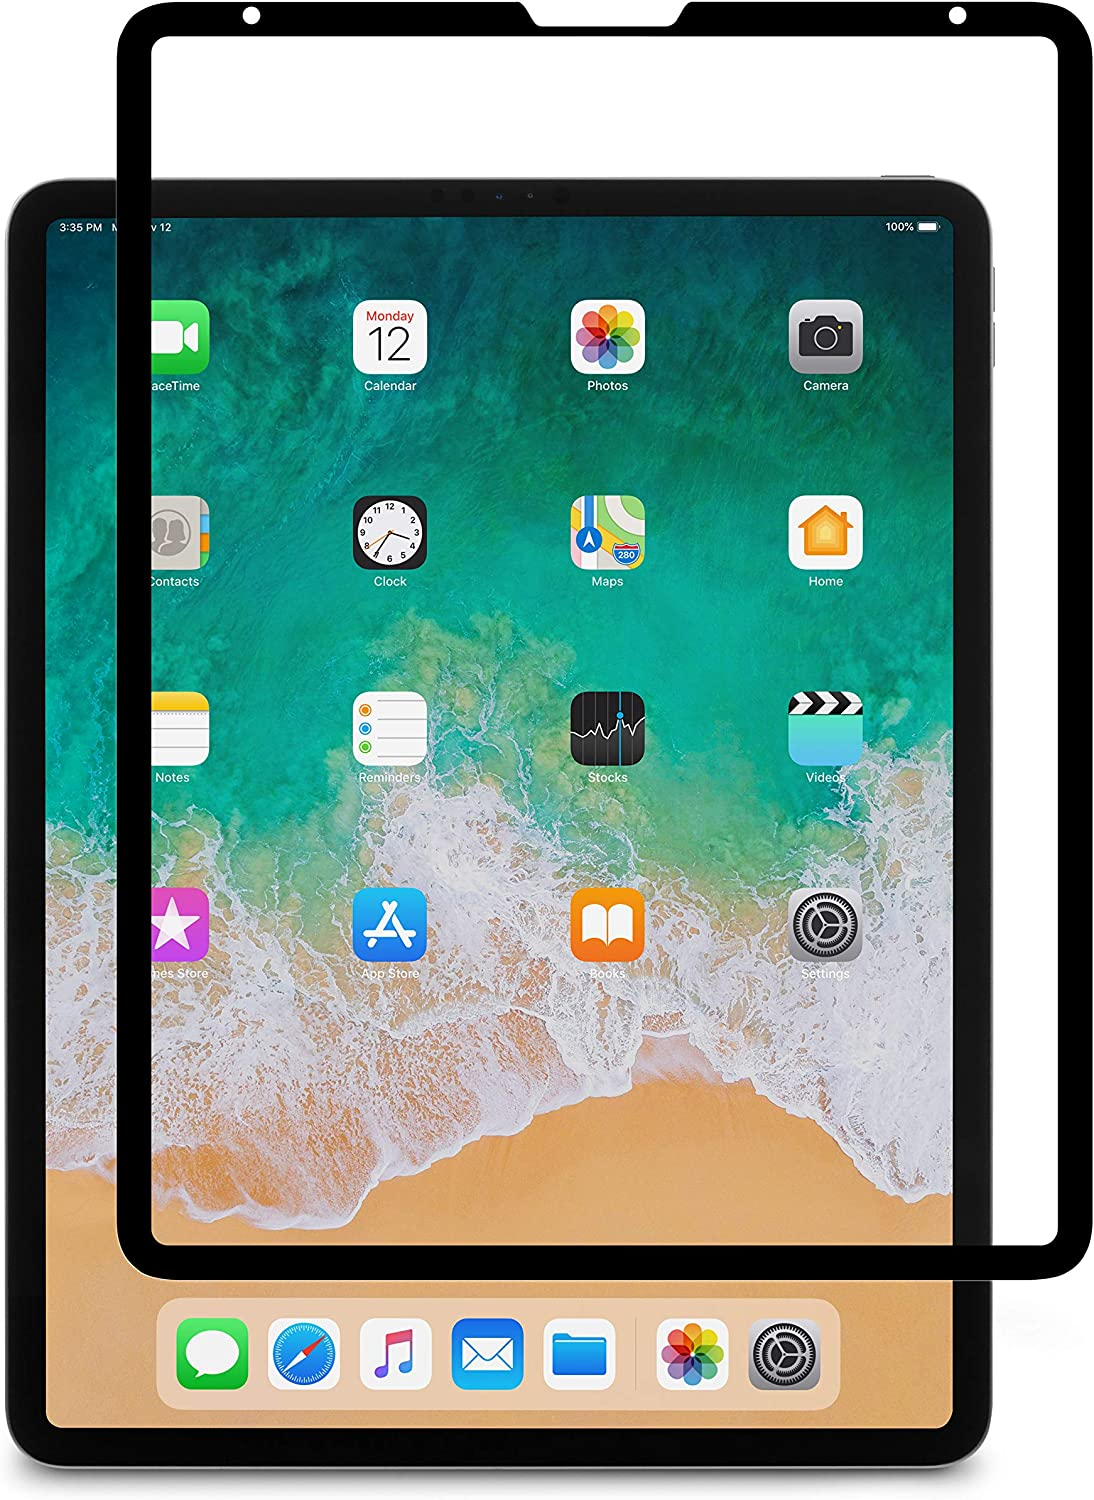 Moshi iVisor AG Screen Protector for iPad Pro 12.9 2020 & 2018, Anti-Glare, Matte, Washable & Reusable, Reduce Fingerprints & Smudging, Compatible with iPad Pencil, for iPad Pro 12.9 (2020 & 2018)